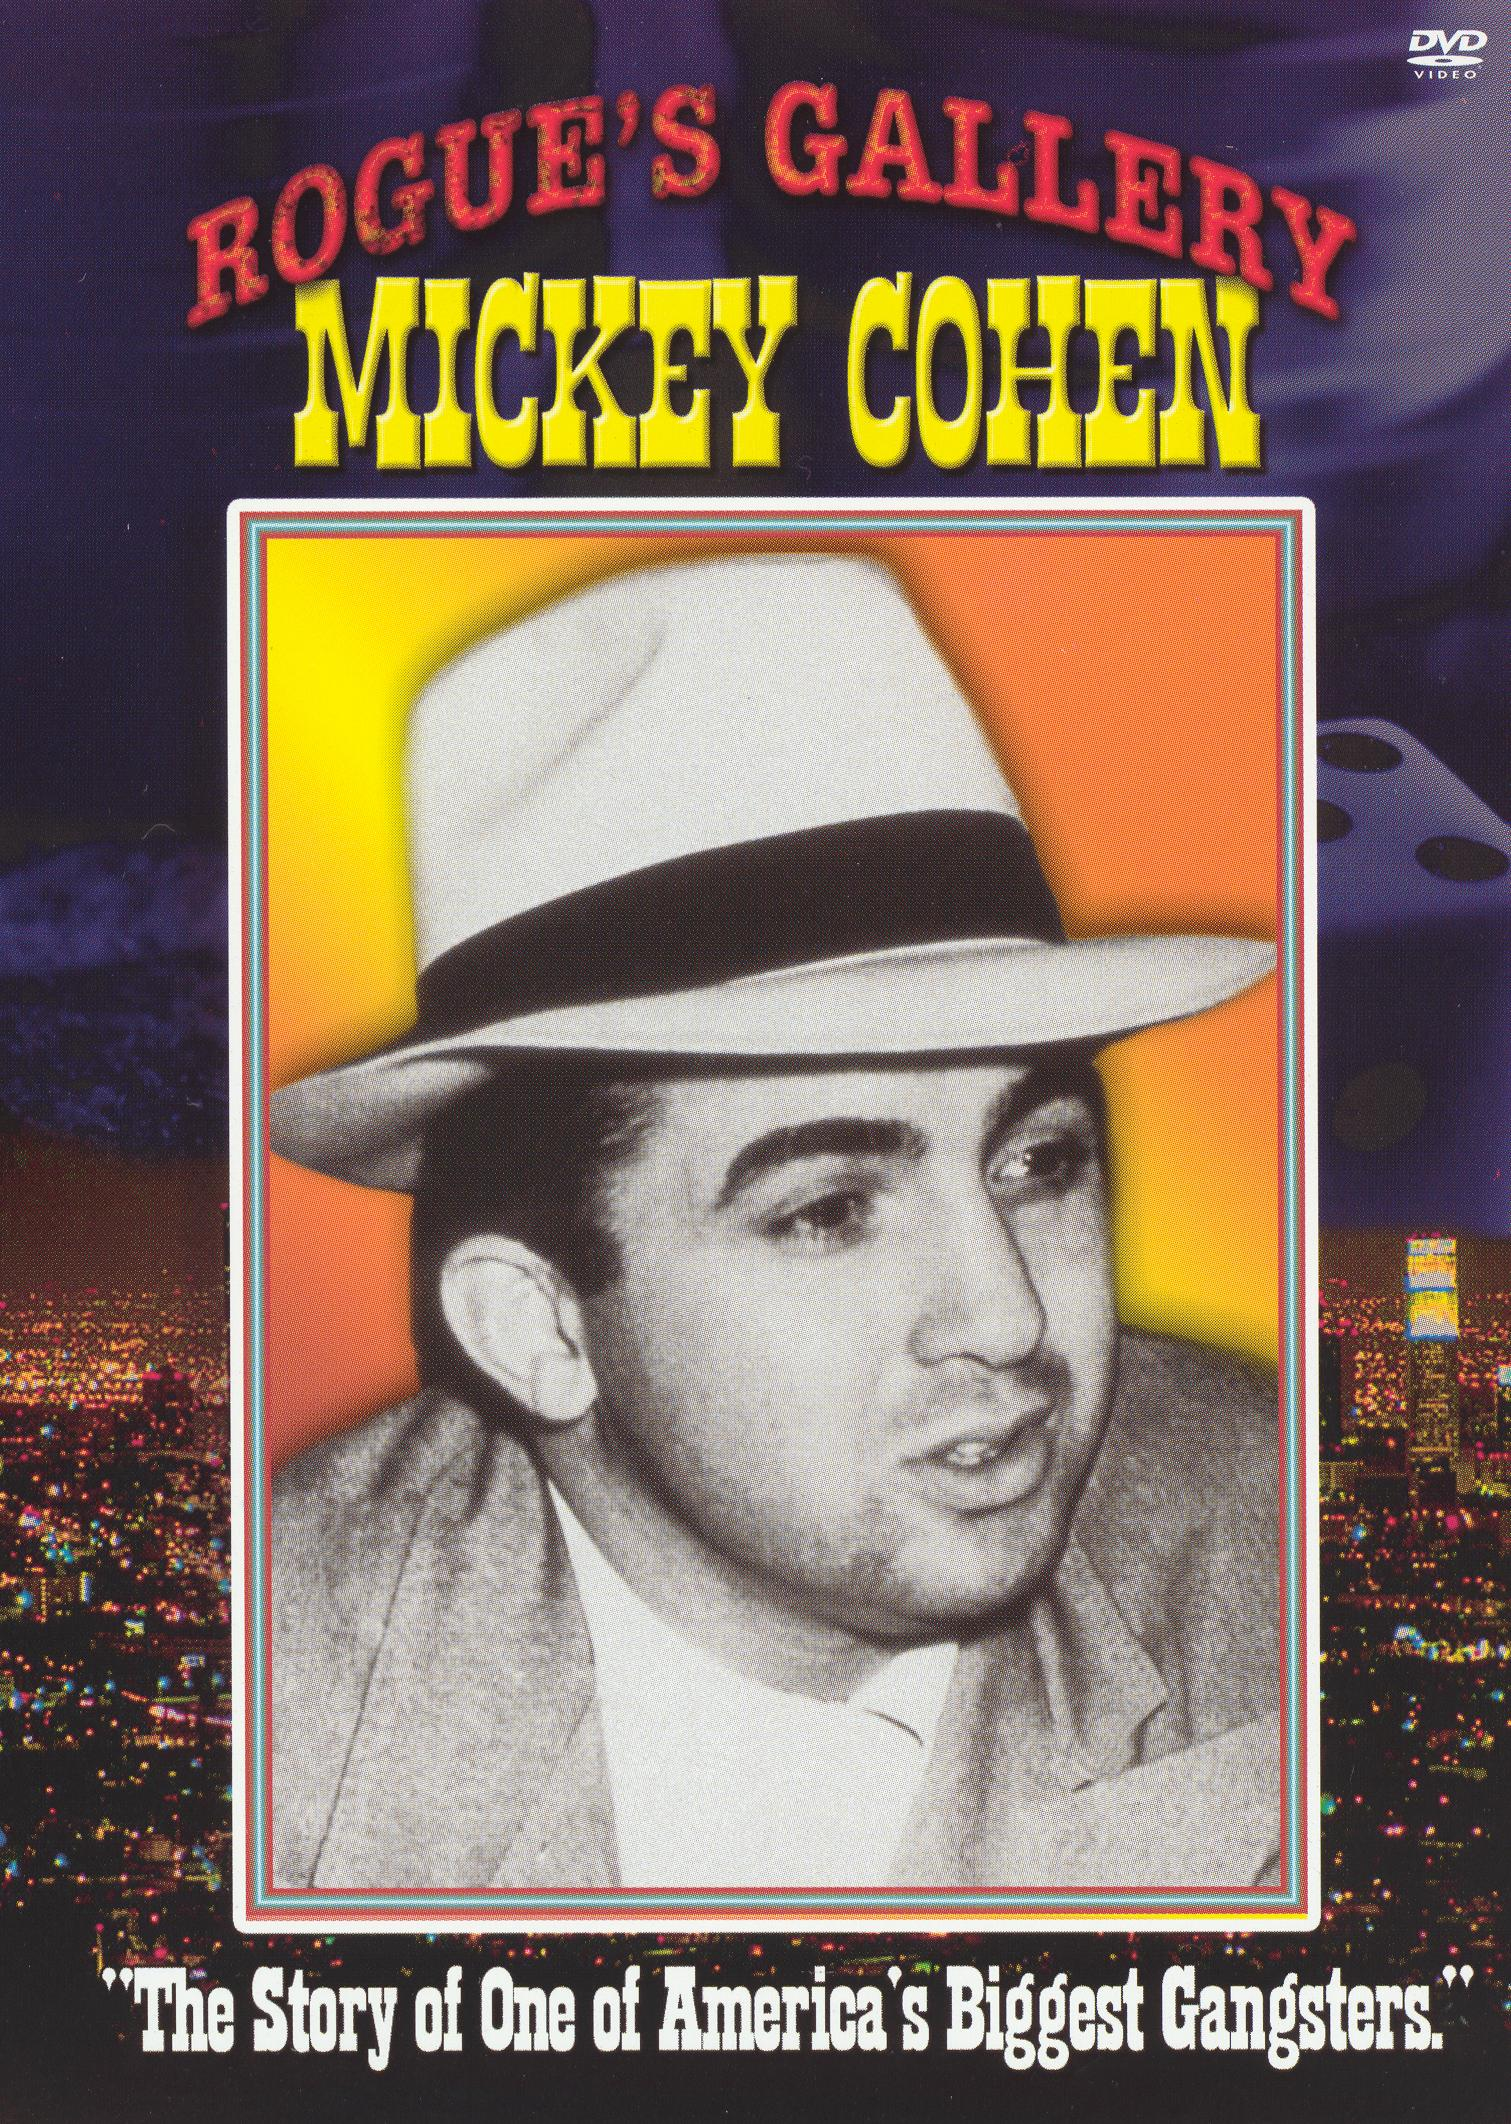 West Coast Rogues Gallery: Mickey Cohen